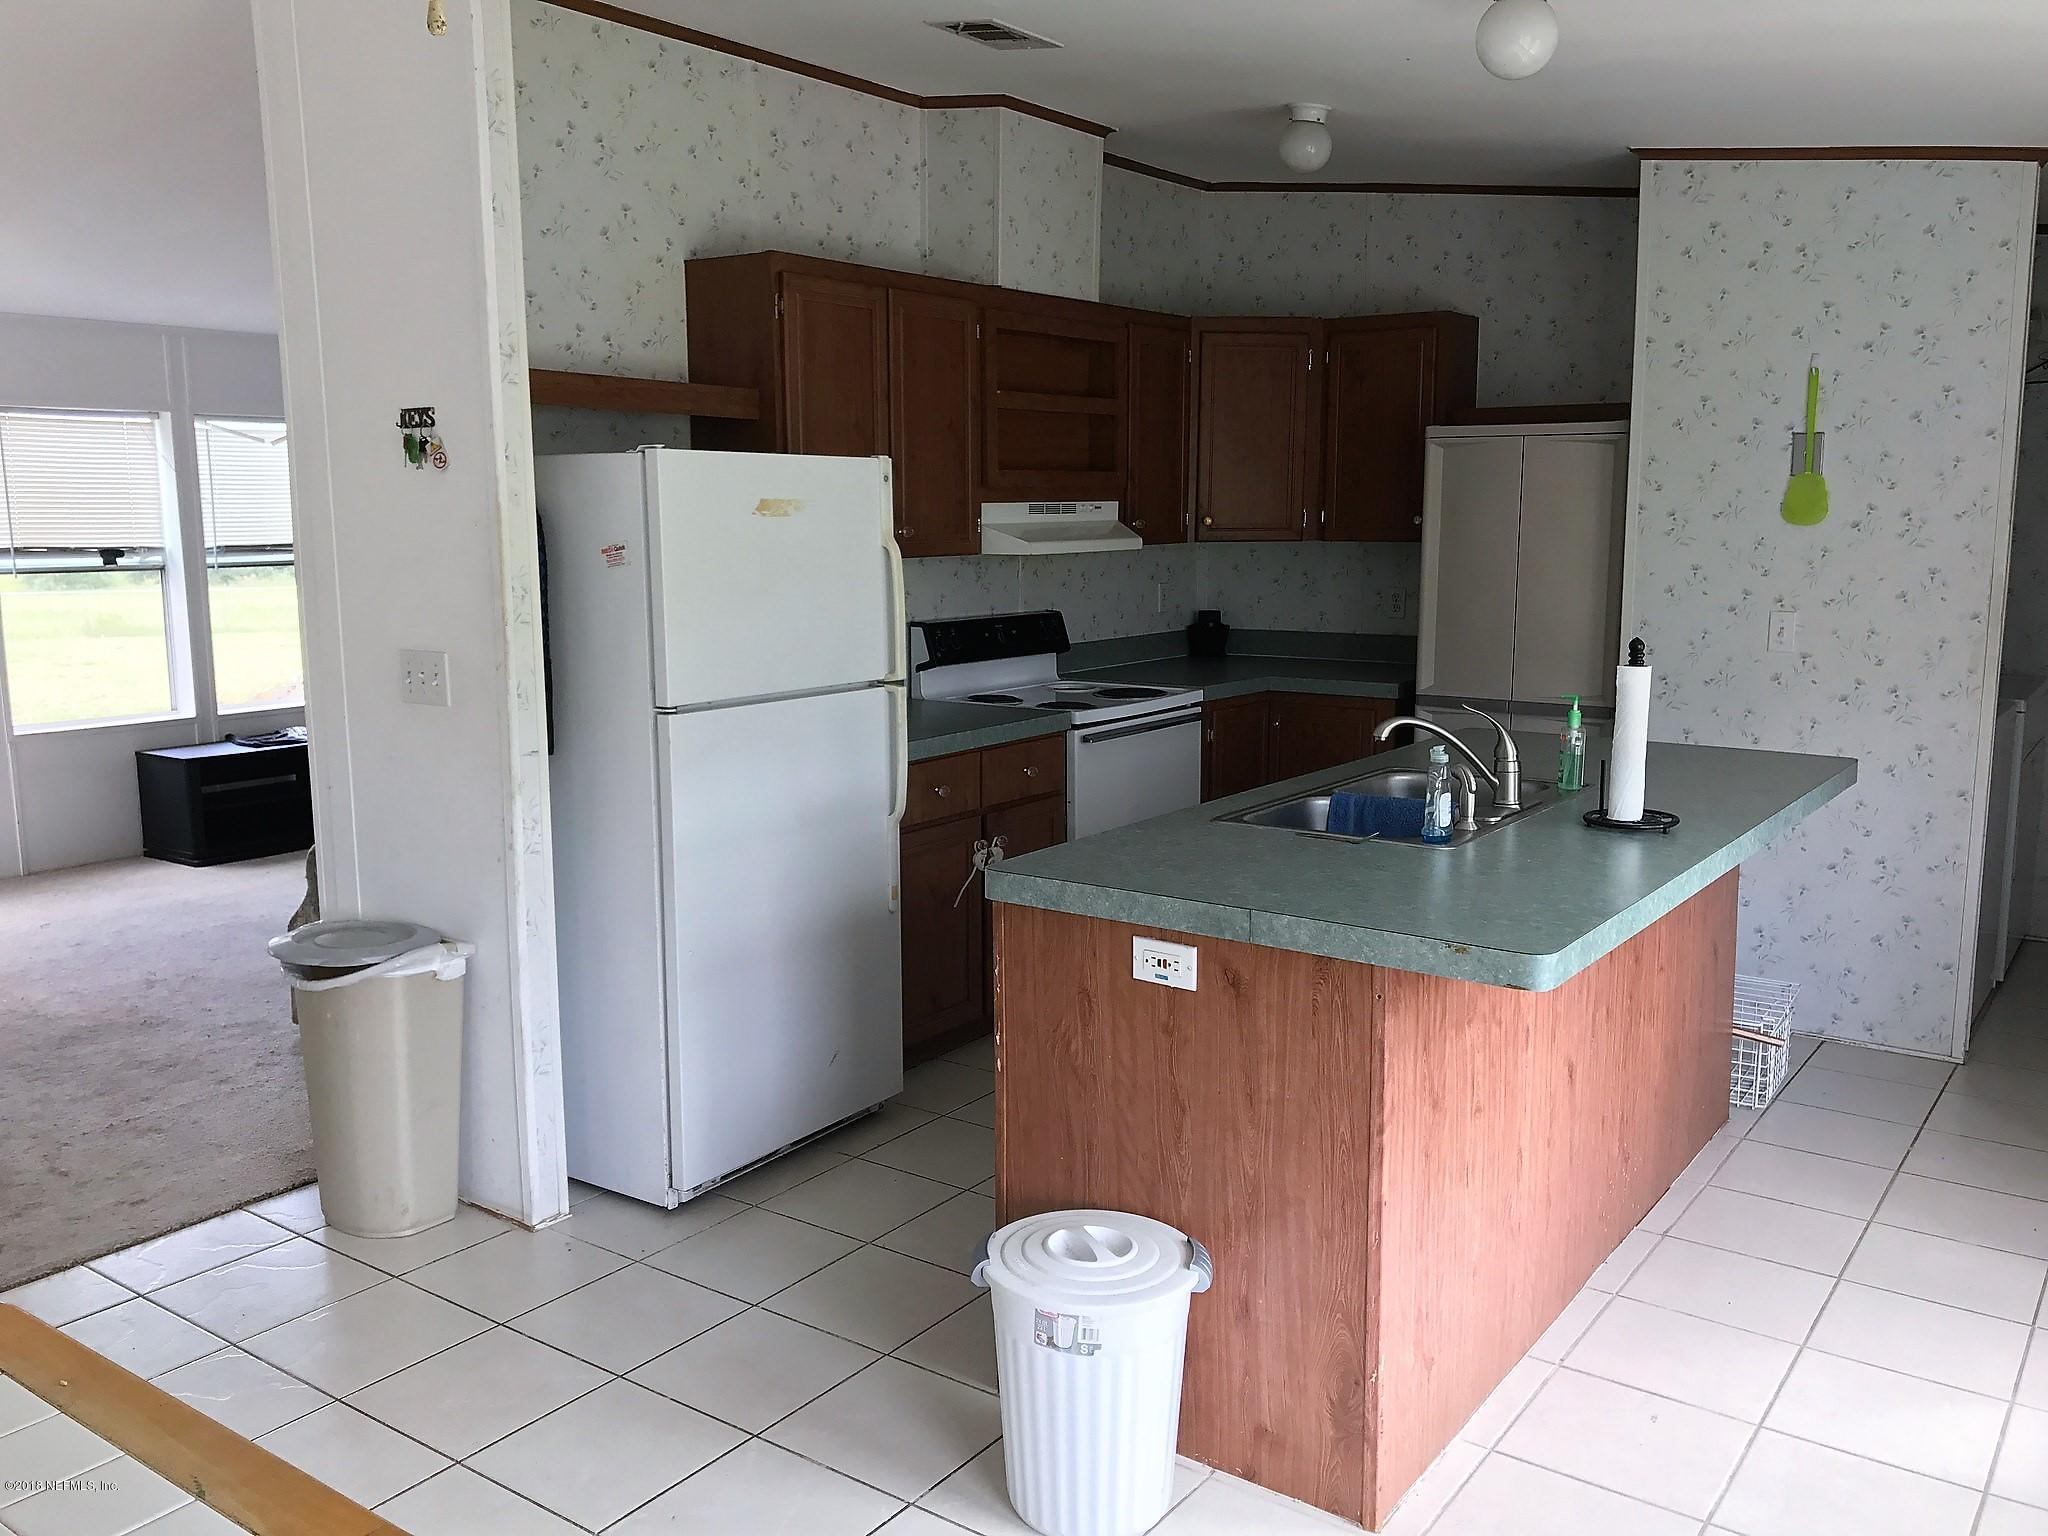 5025 RODEO, KEYSTONE HEIGHTS, FLORIDA 32656, 3 Bedrooms Bedrooms, ,2 BathroomsBathrooms,Residential - mobile home,For sale,RODEO,934072